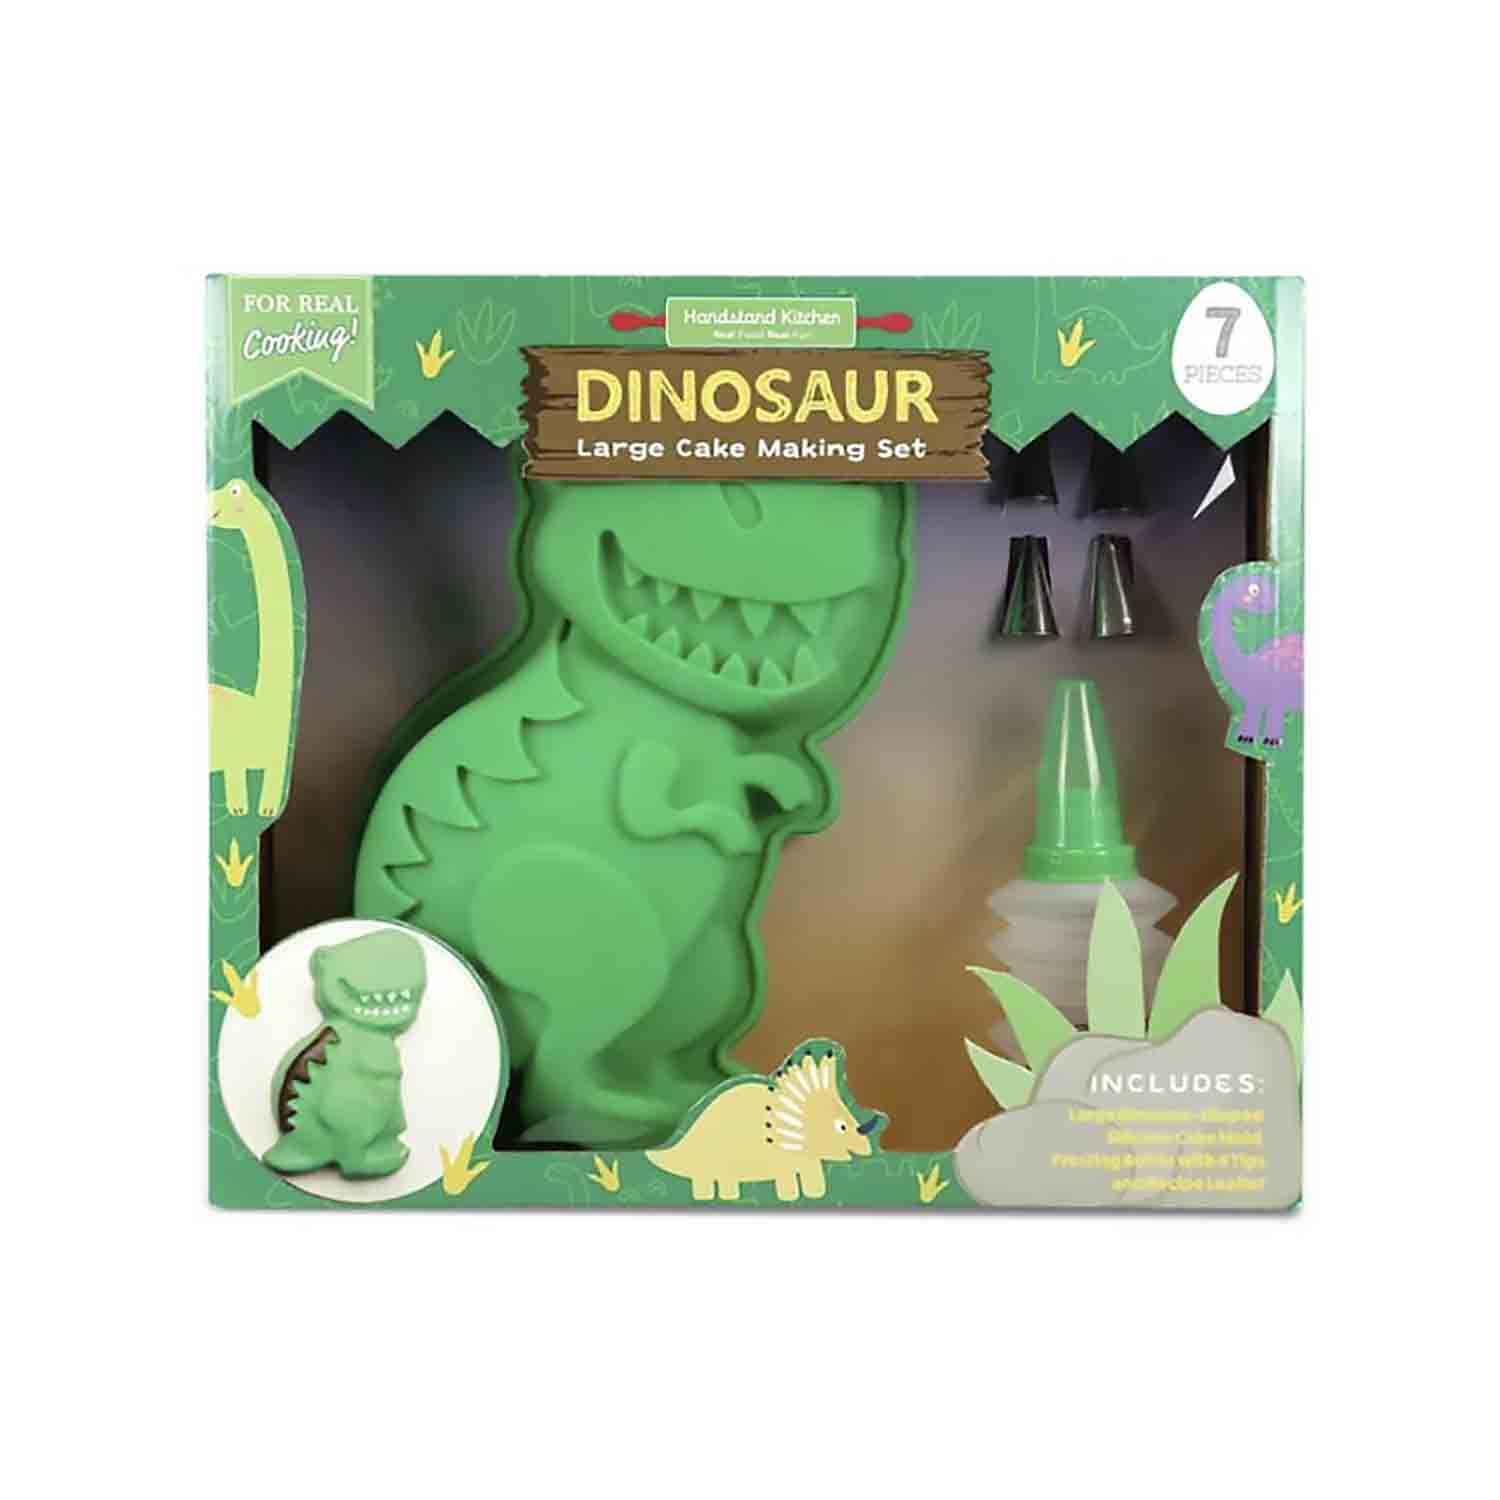 Dinosaur Cake Baking Set